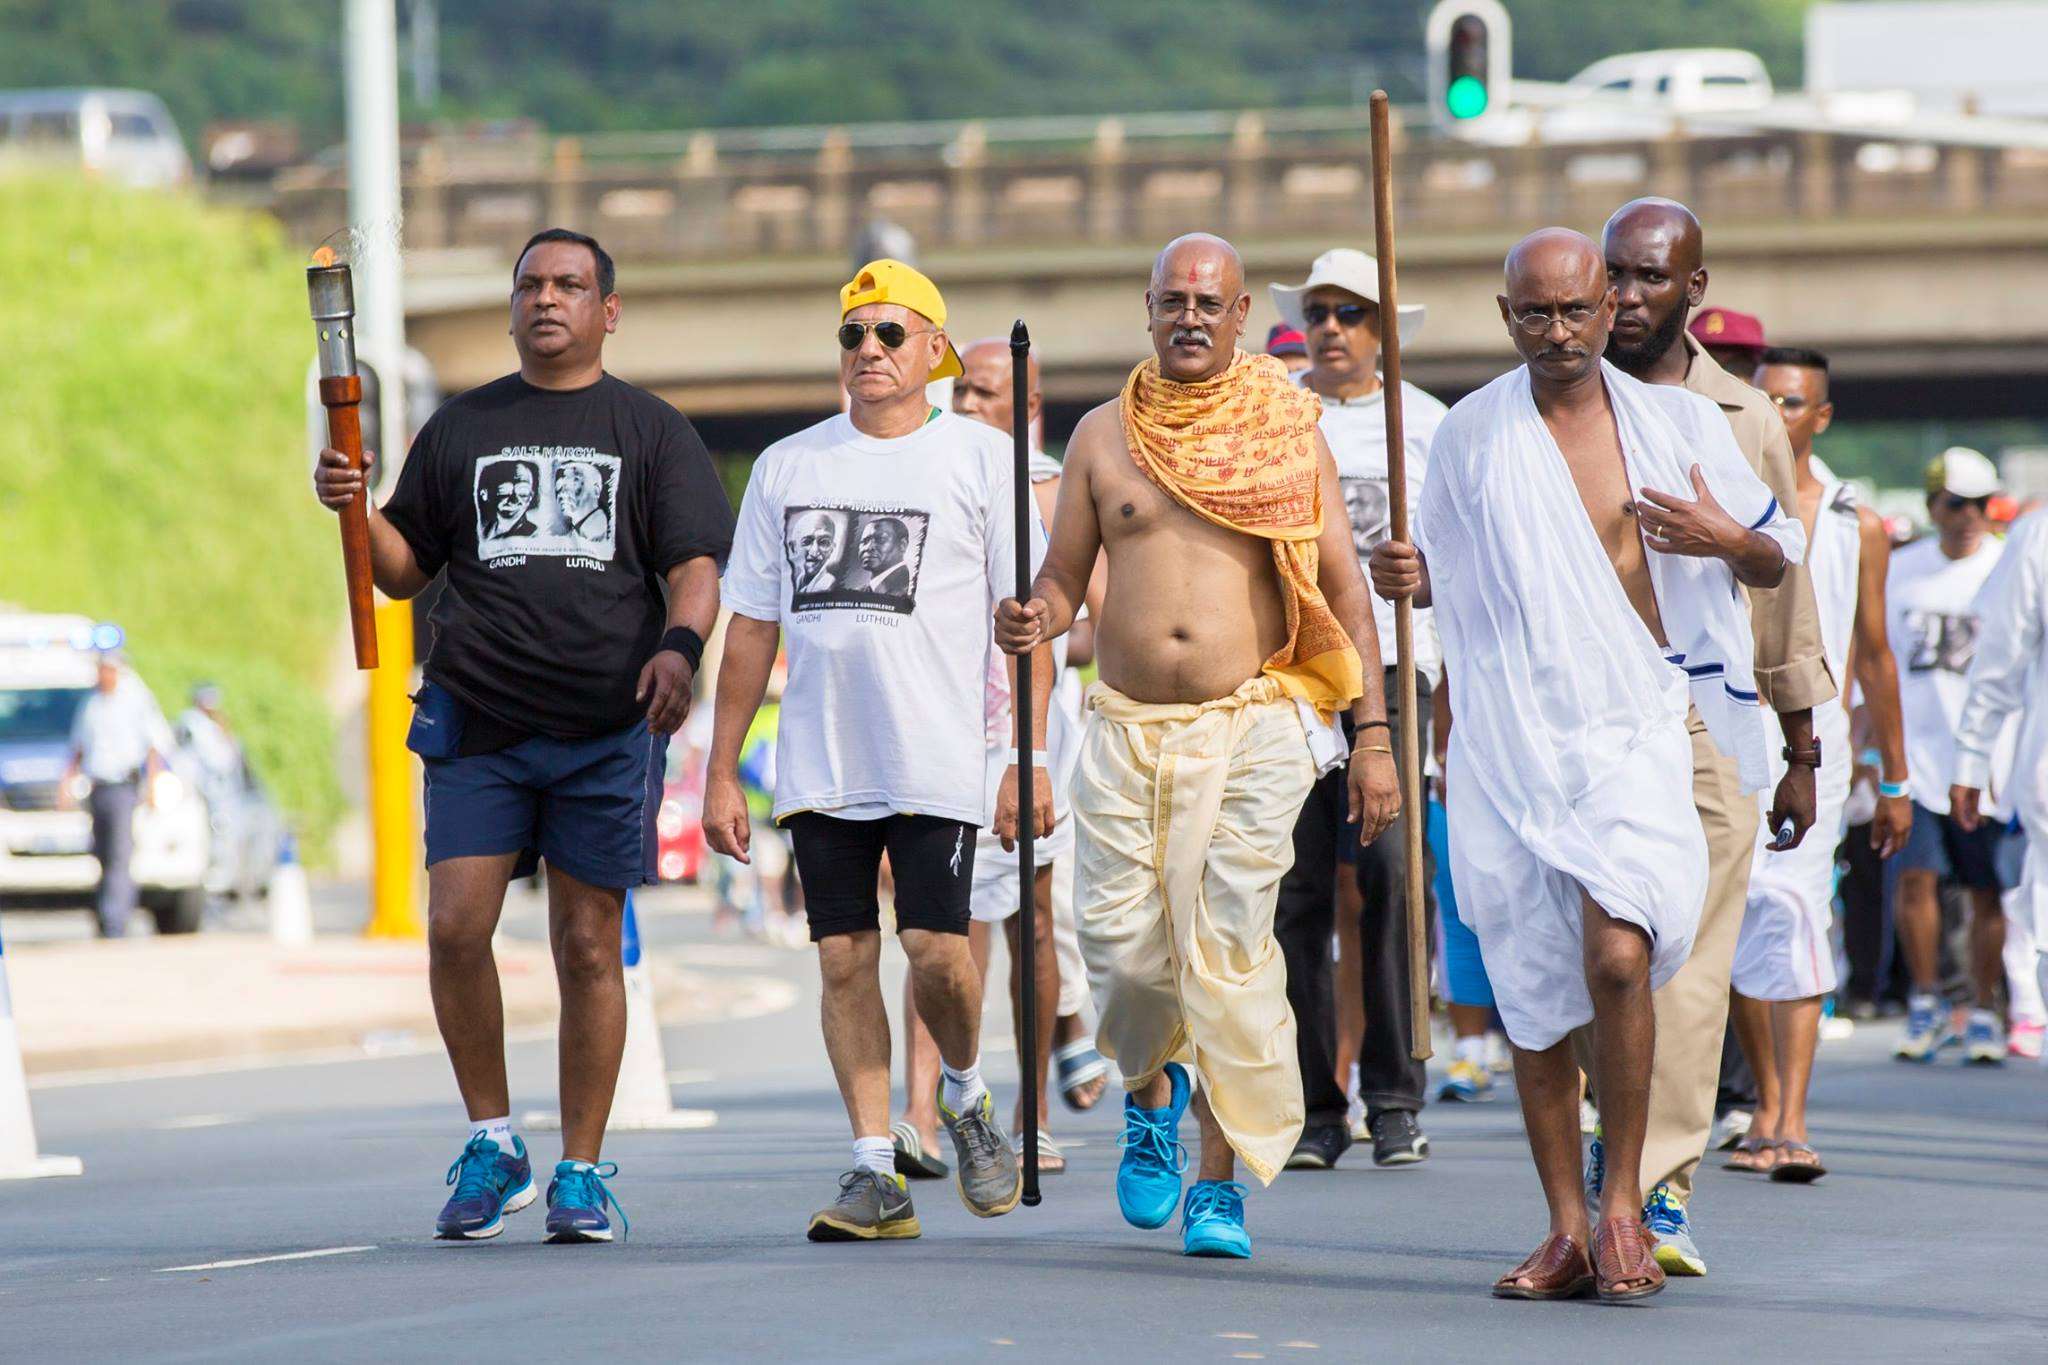 Marching in South Africa's Durban in Memory of Gandhi